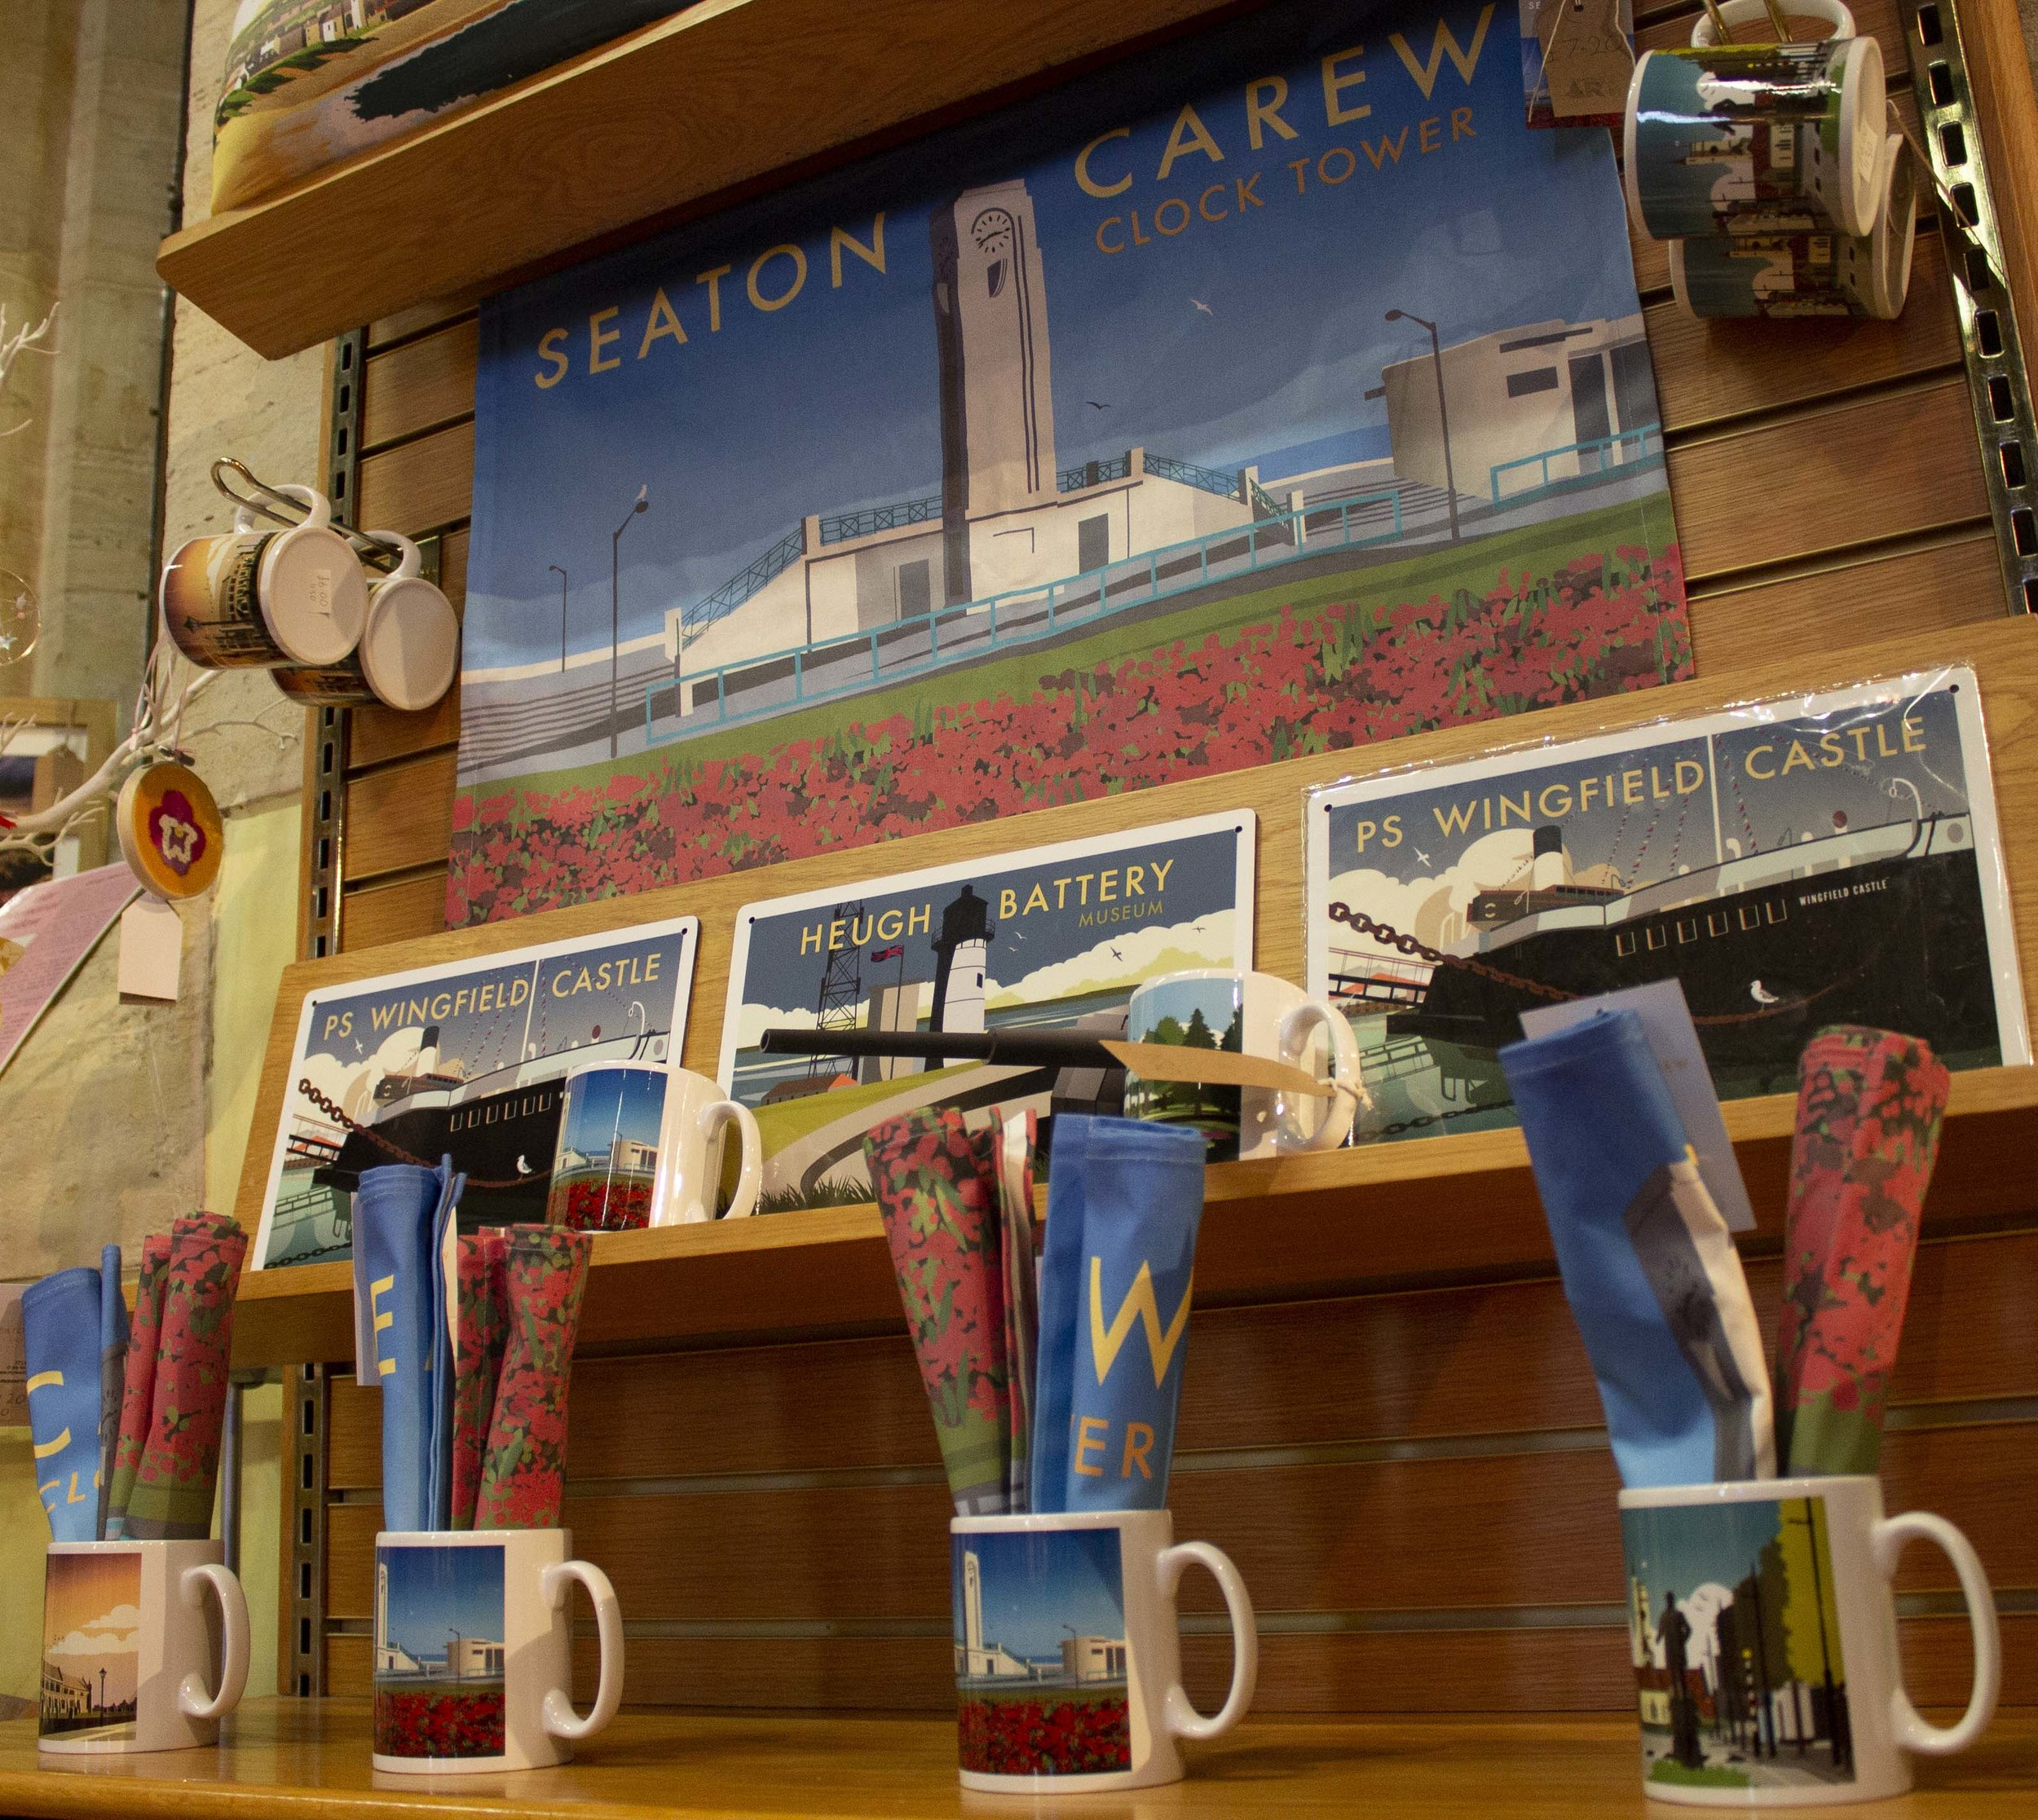 Featured Products: Seaton Carew Clock Tower tea towel, St Hilda's Church, Church Street, Seaton Carew Clock Tower and Ward Jackson Park mugs